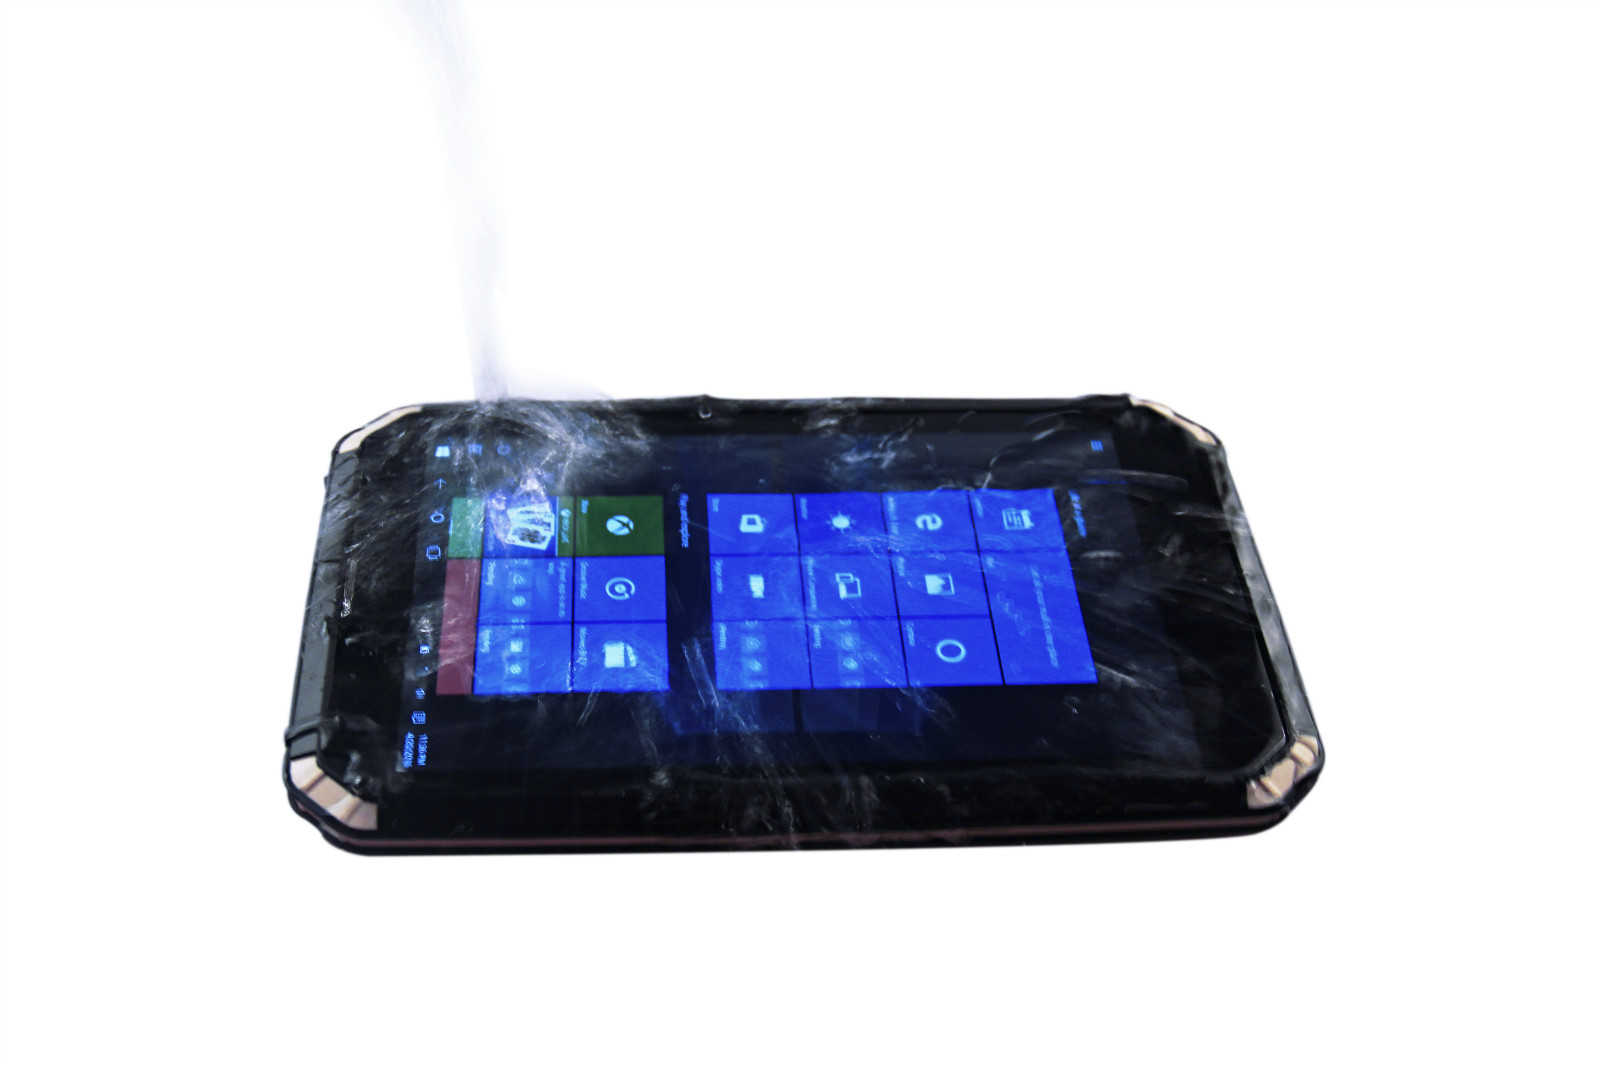 IP68 rated waterproof and dustproof durable tablet RuggedT T2S